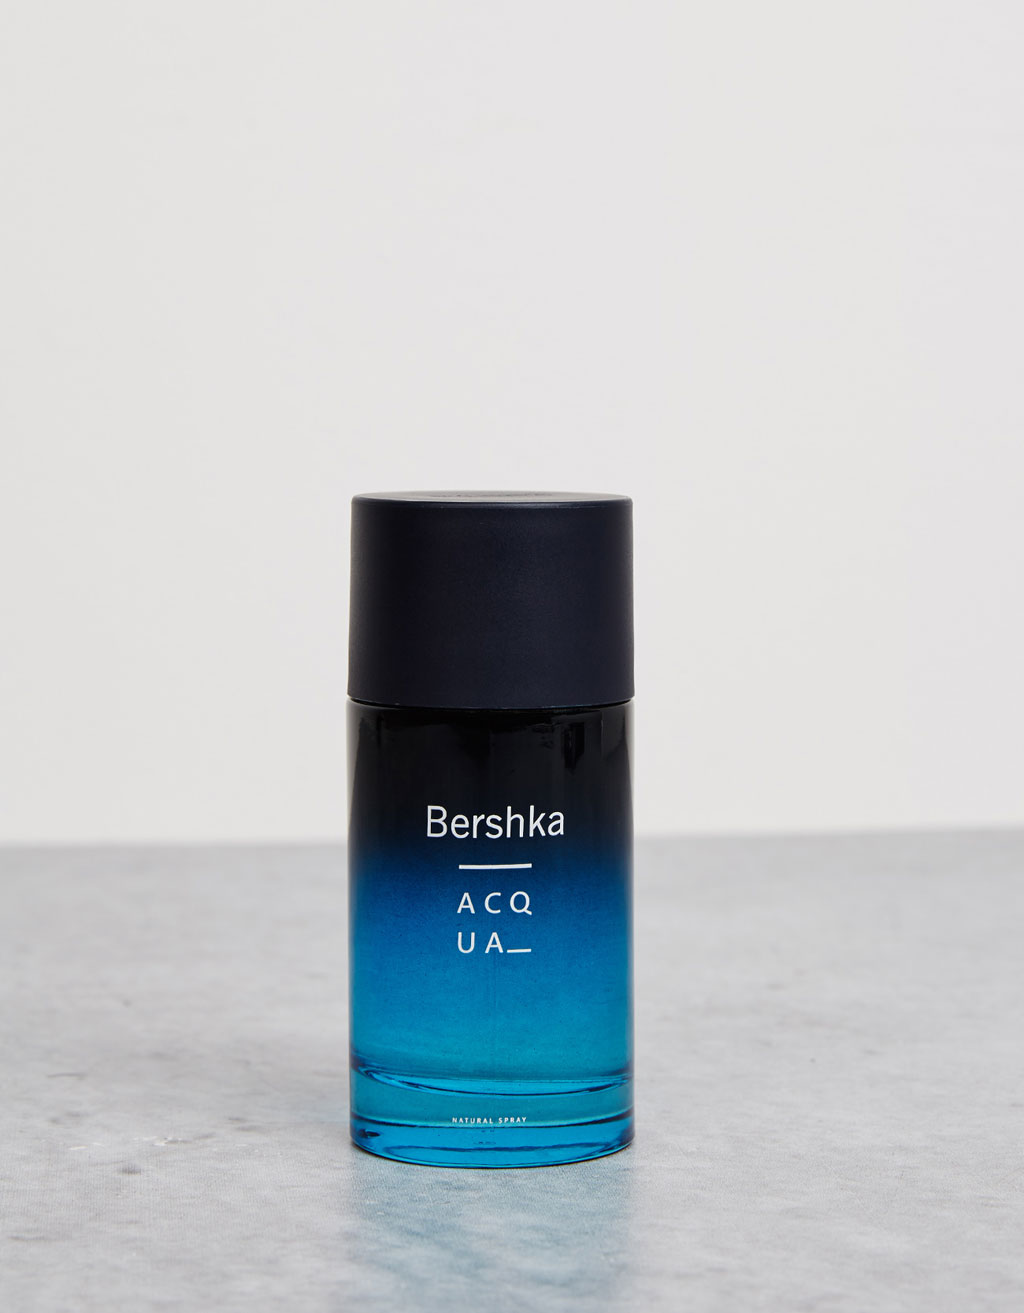 Bershka 'Acqua' Eau de Toilette 100ml